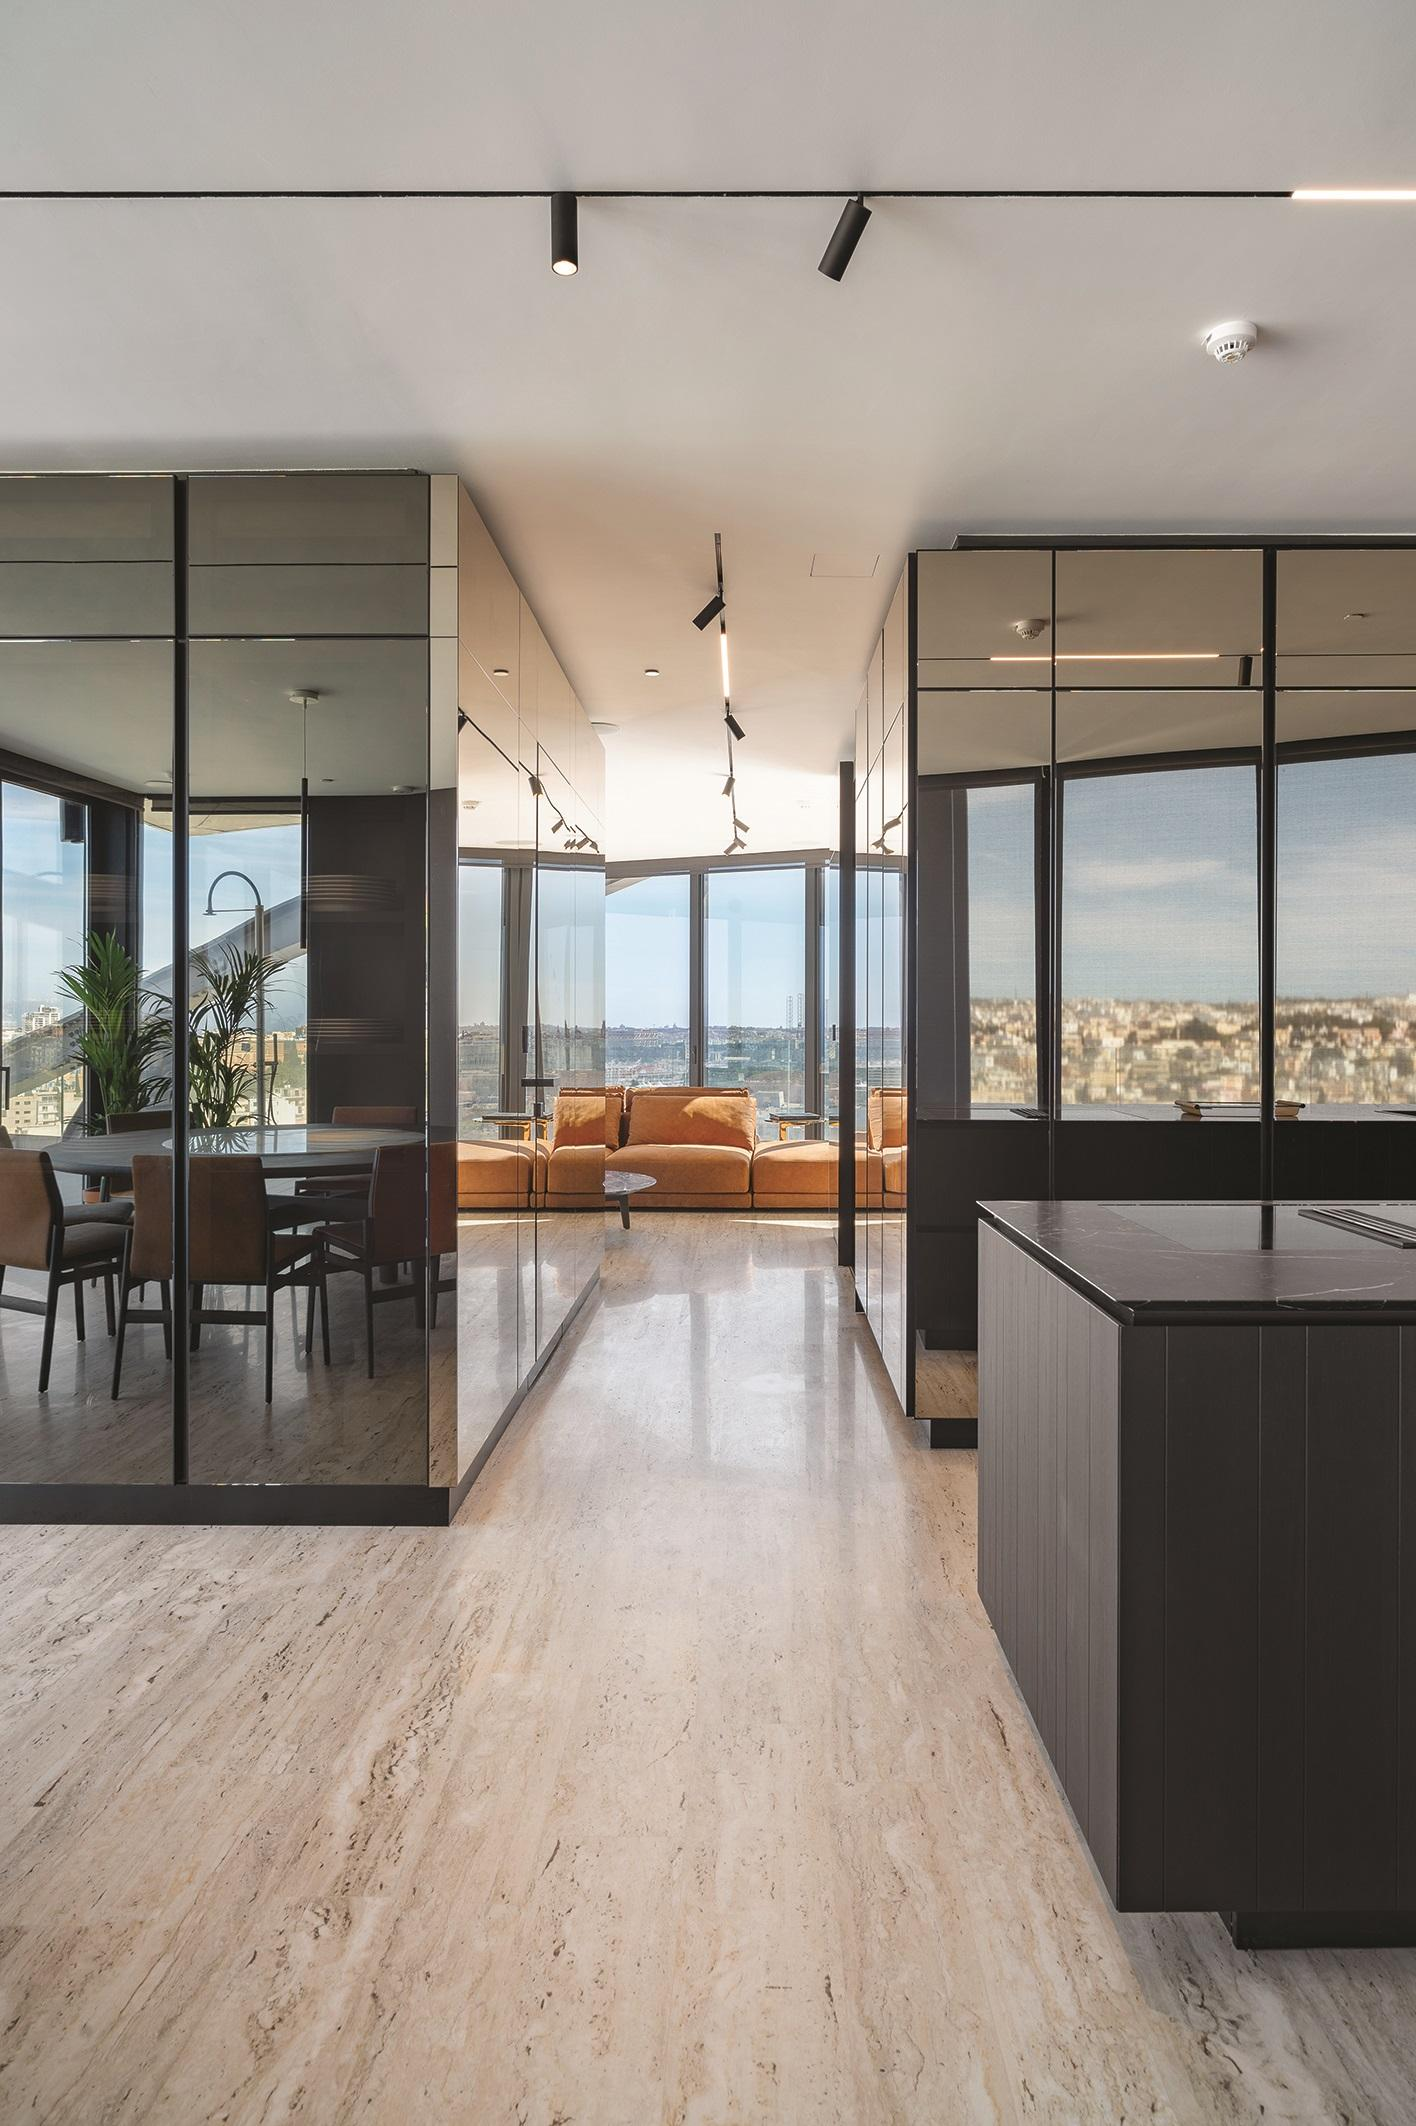 East Penthouse, Gżira: a residence using spatial zoning as an alternative to conventional, open-plan living. Photo: Alex Attard